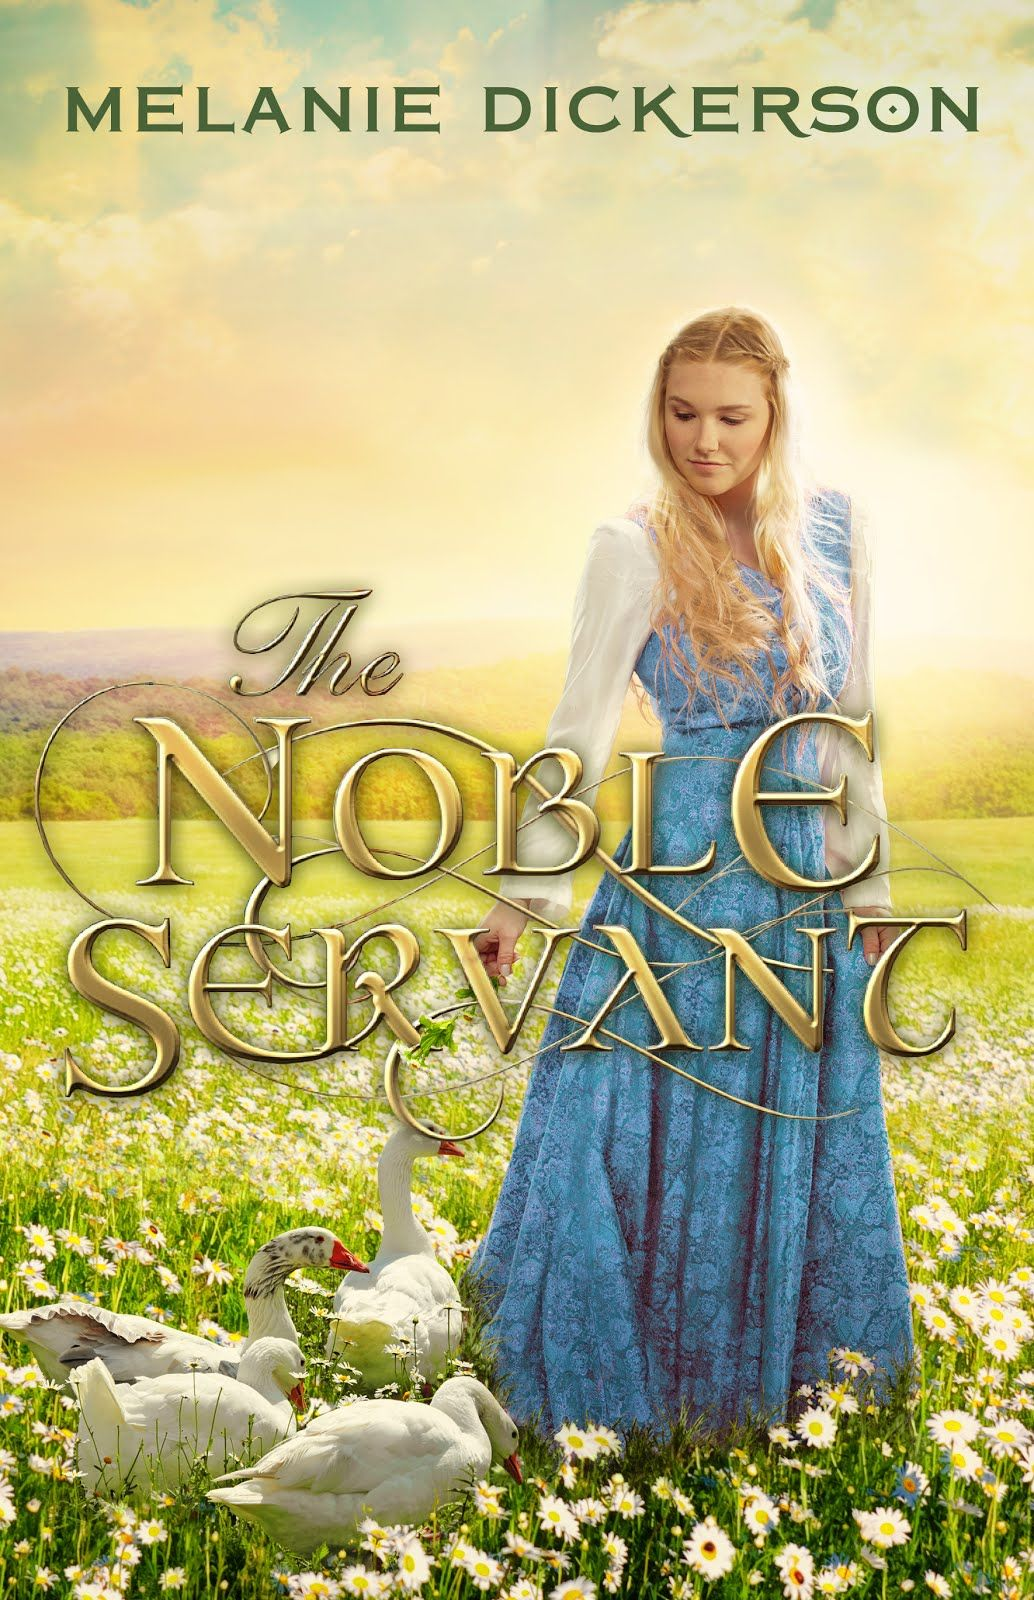 Melanie Dickerson - The Noble Servant